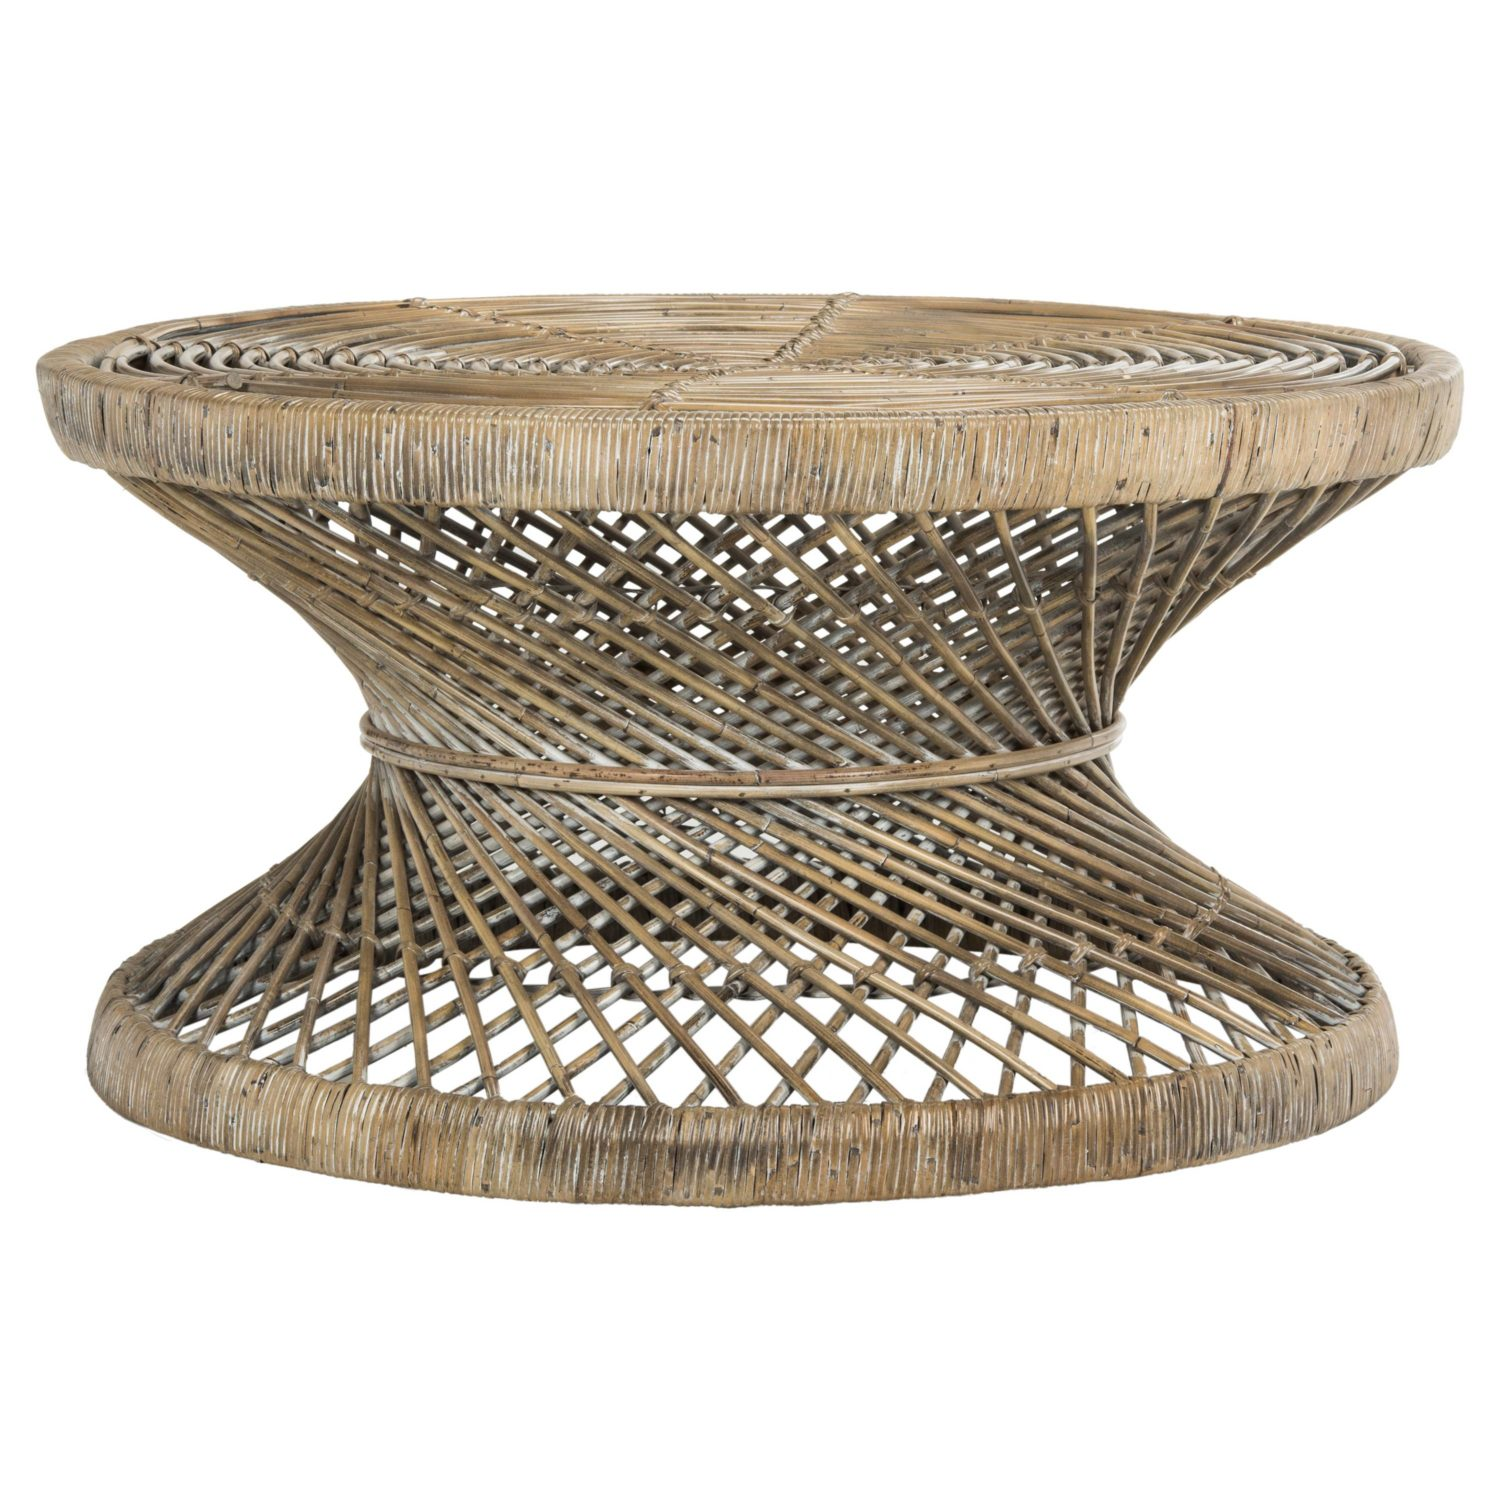 Rattan round coffee table eclectic goods Rattan round coffee table